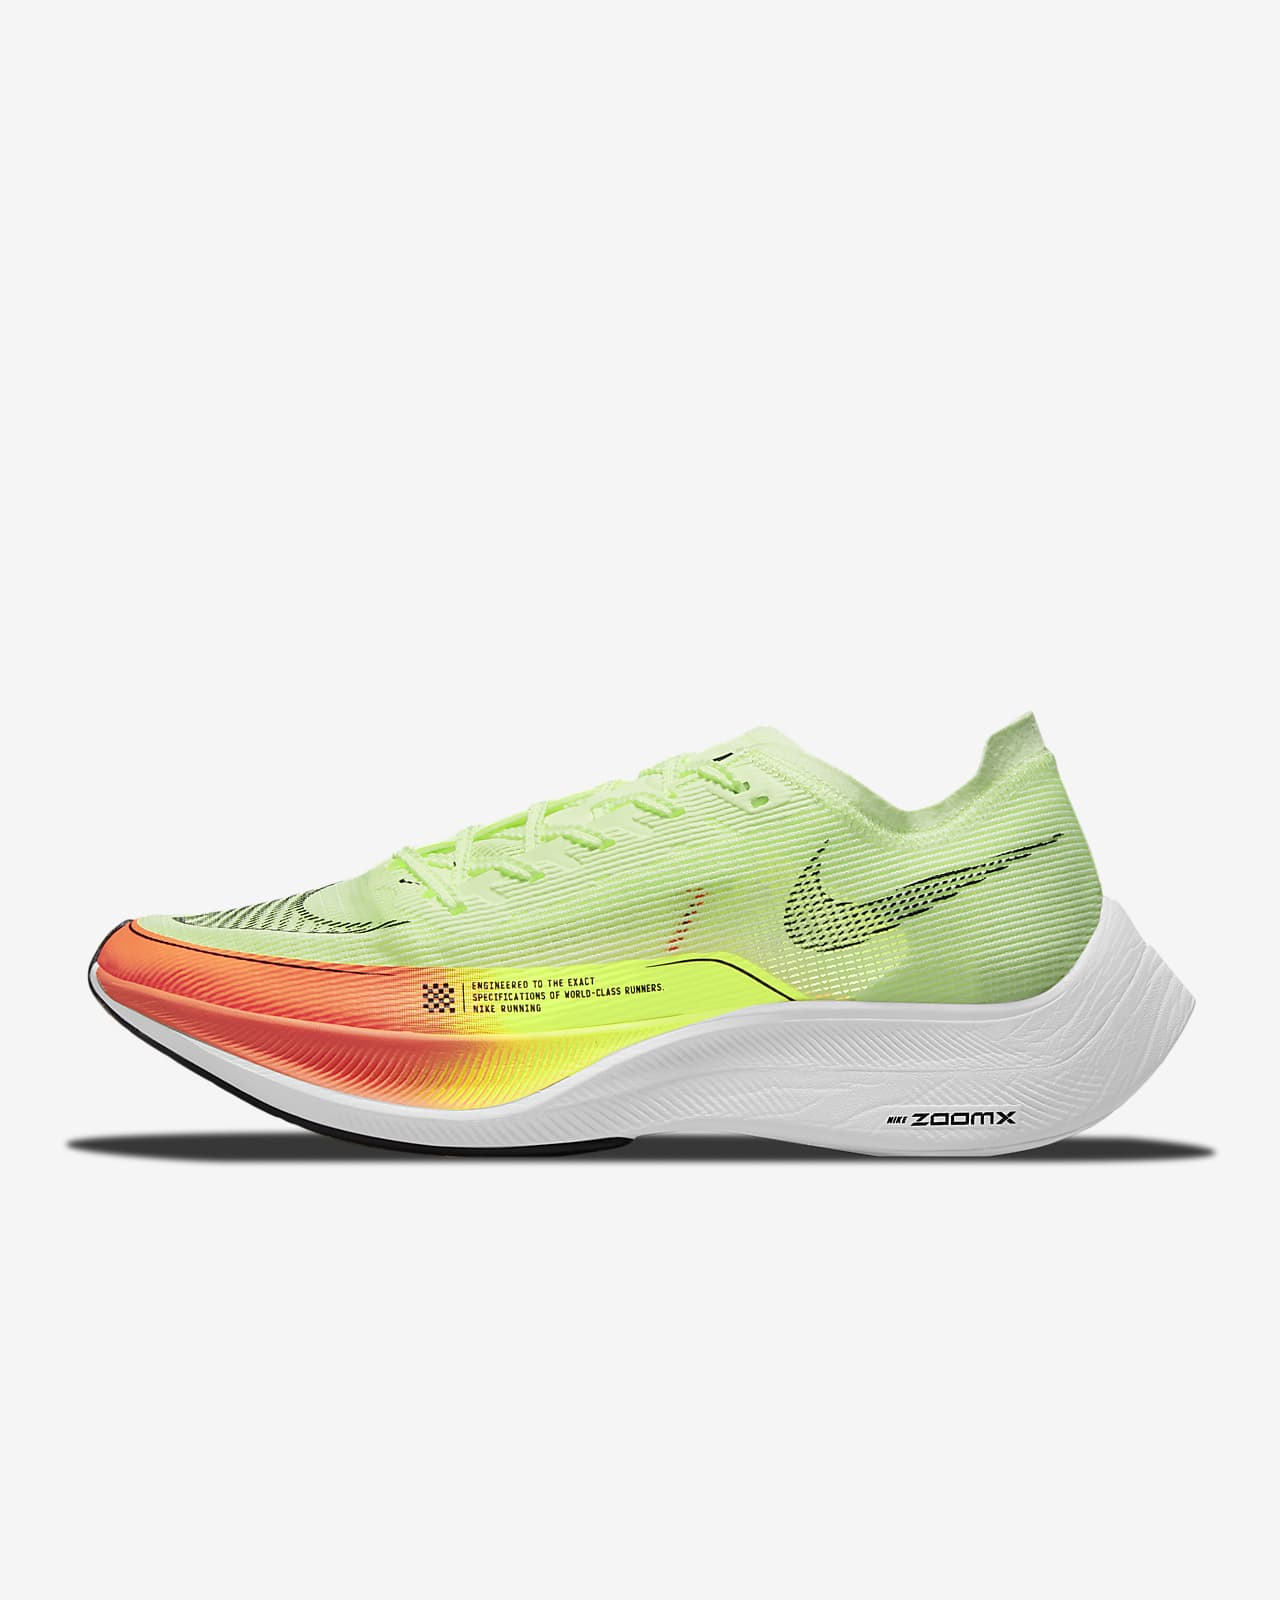 Nike ZoomX Vaporfly Next% 2 Men's Road Racing Shoes